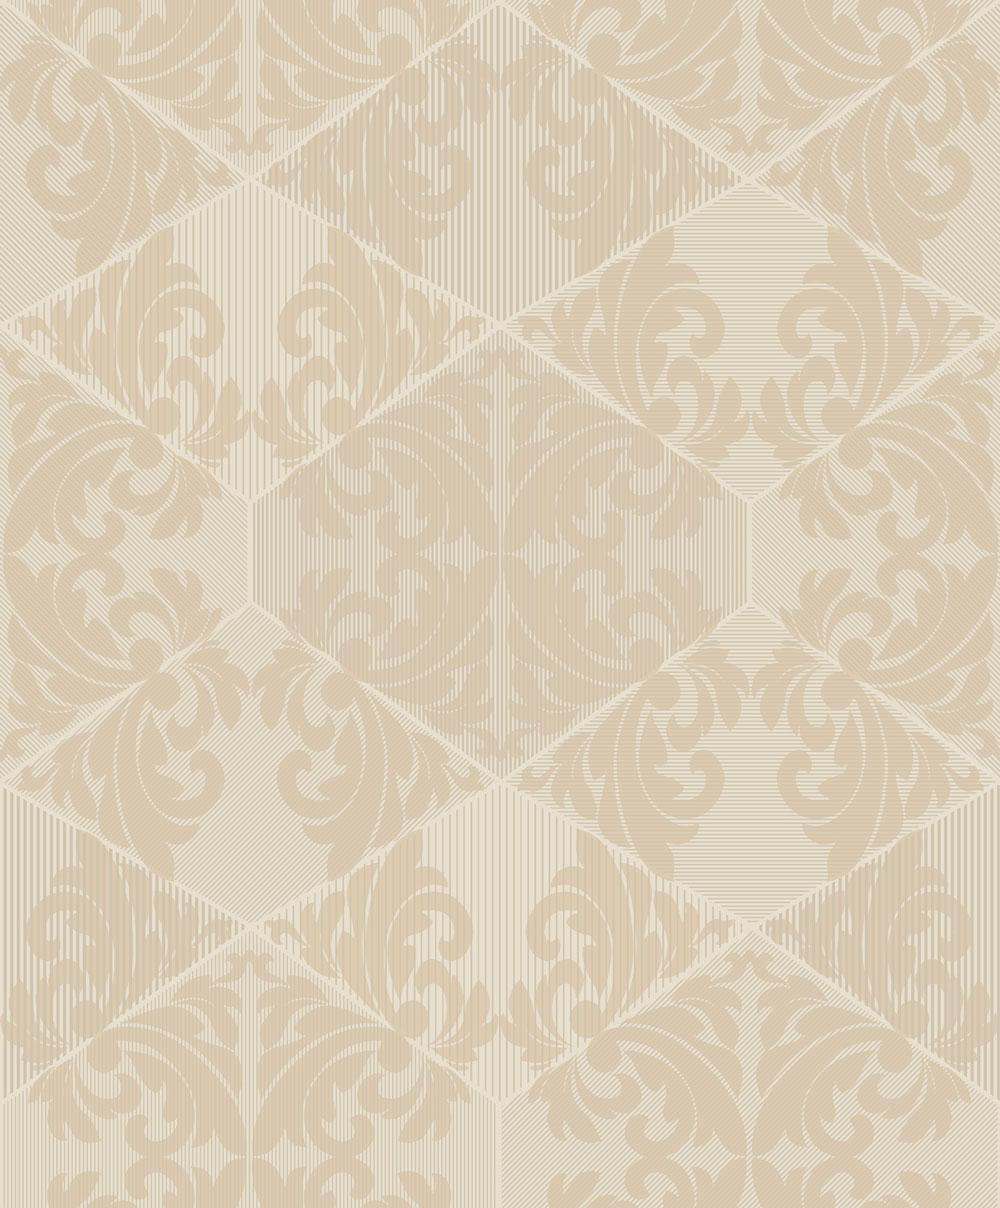 Albany Zena Cream Wallpaper - Product code: 65272